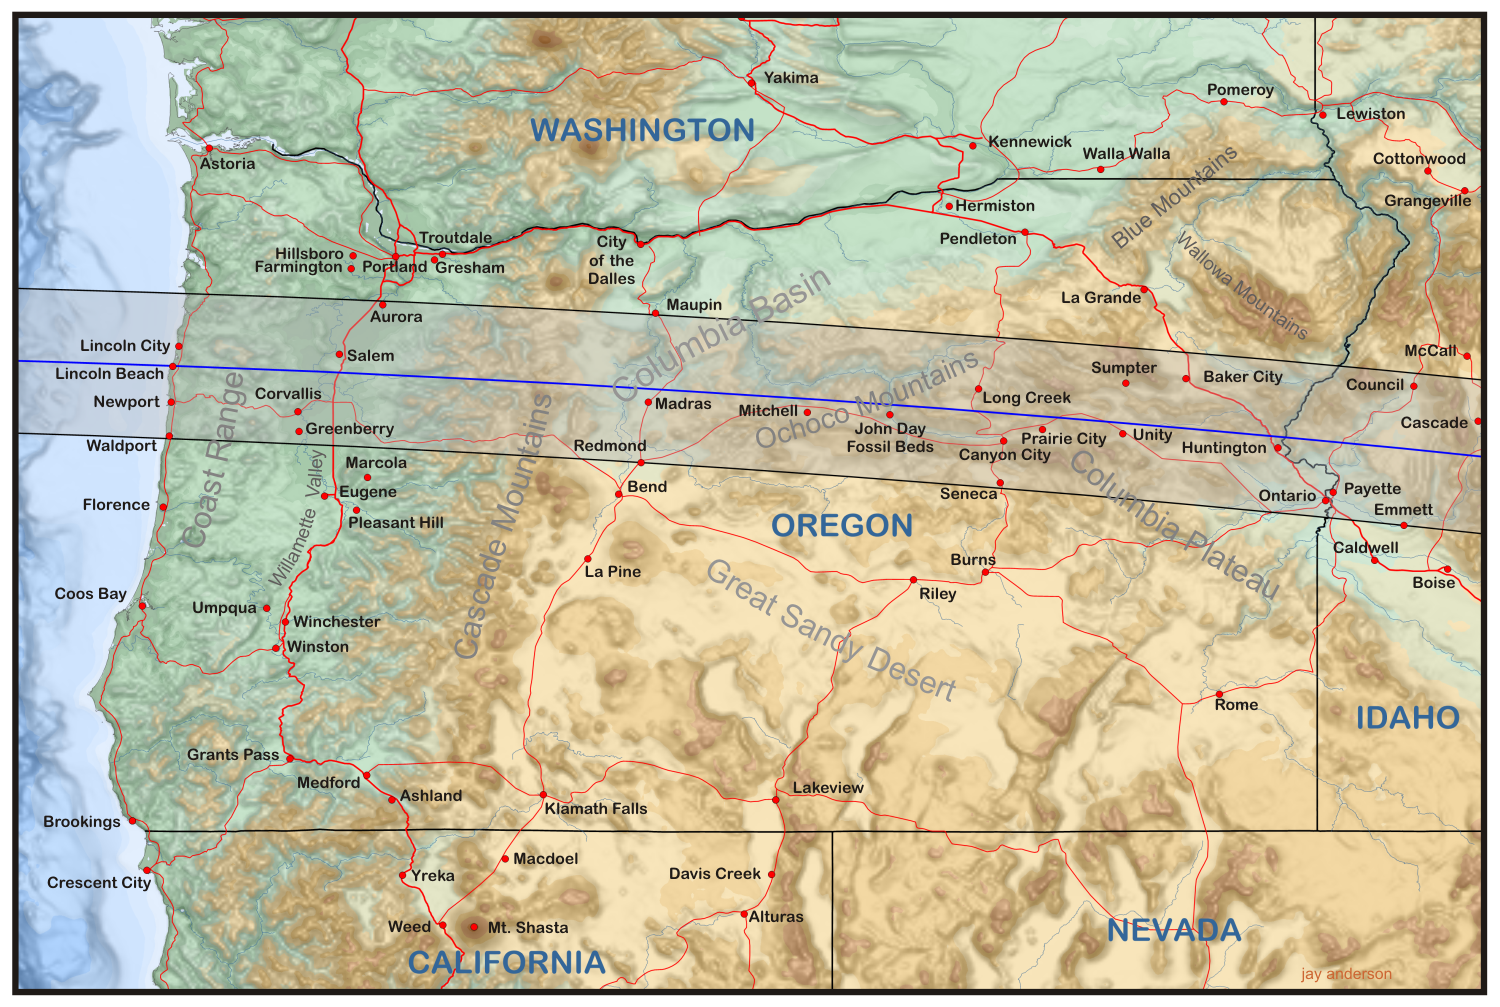 Oregon Eclipsophile - Eastern oregon map